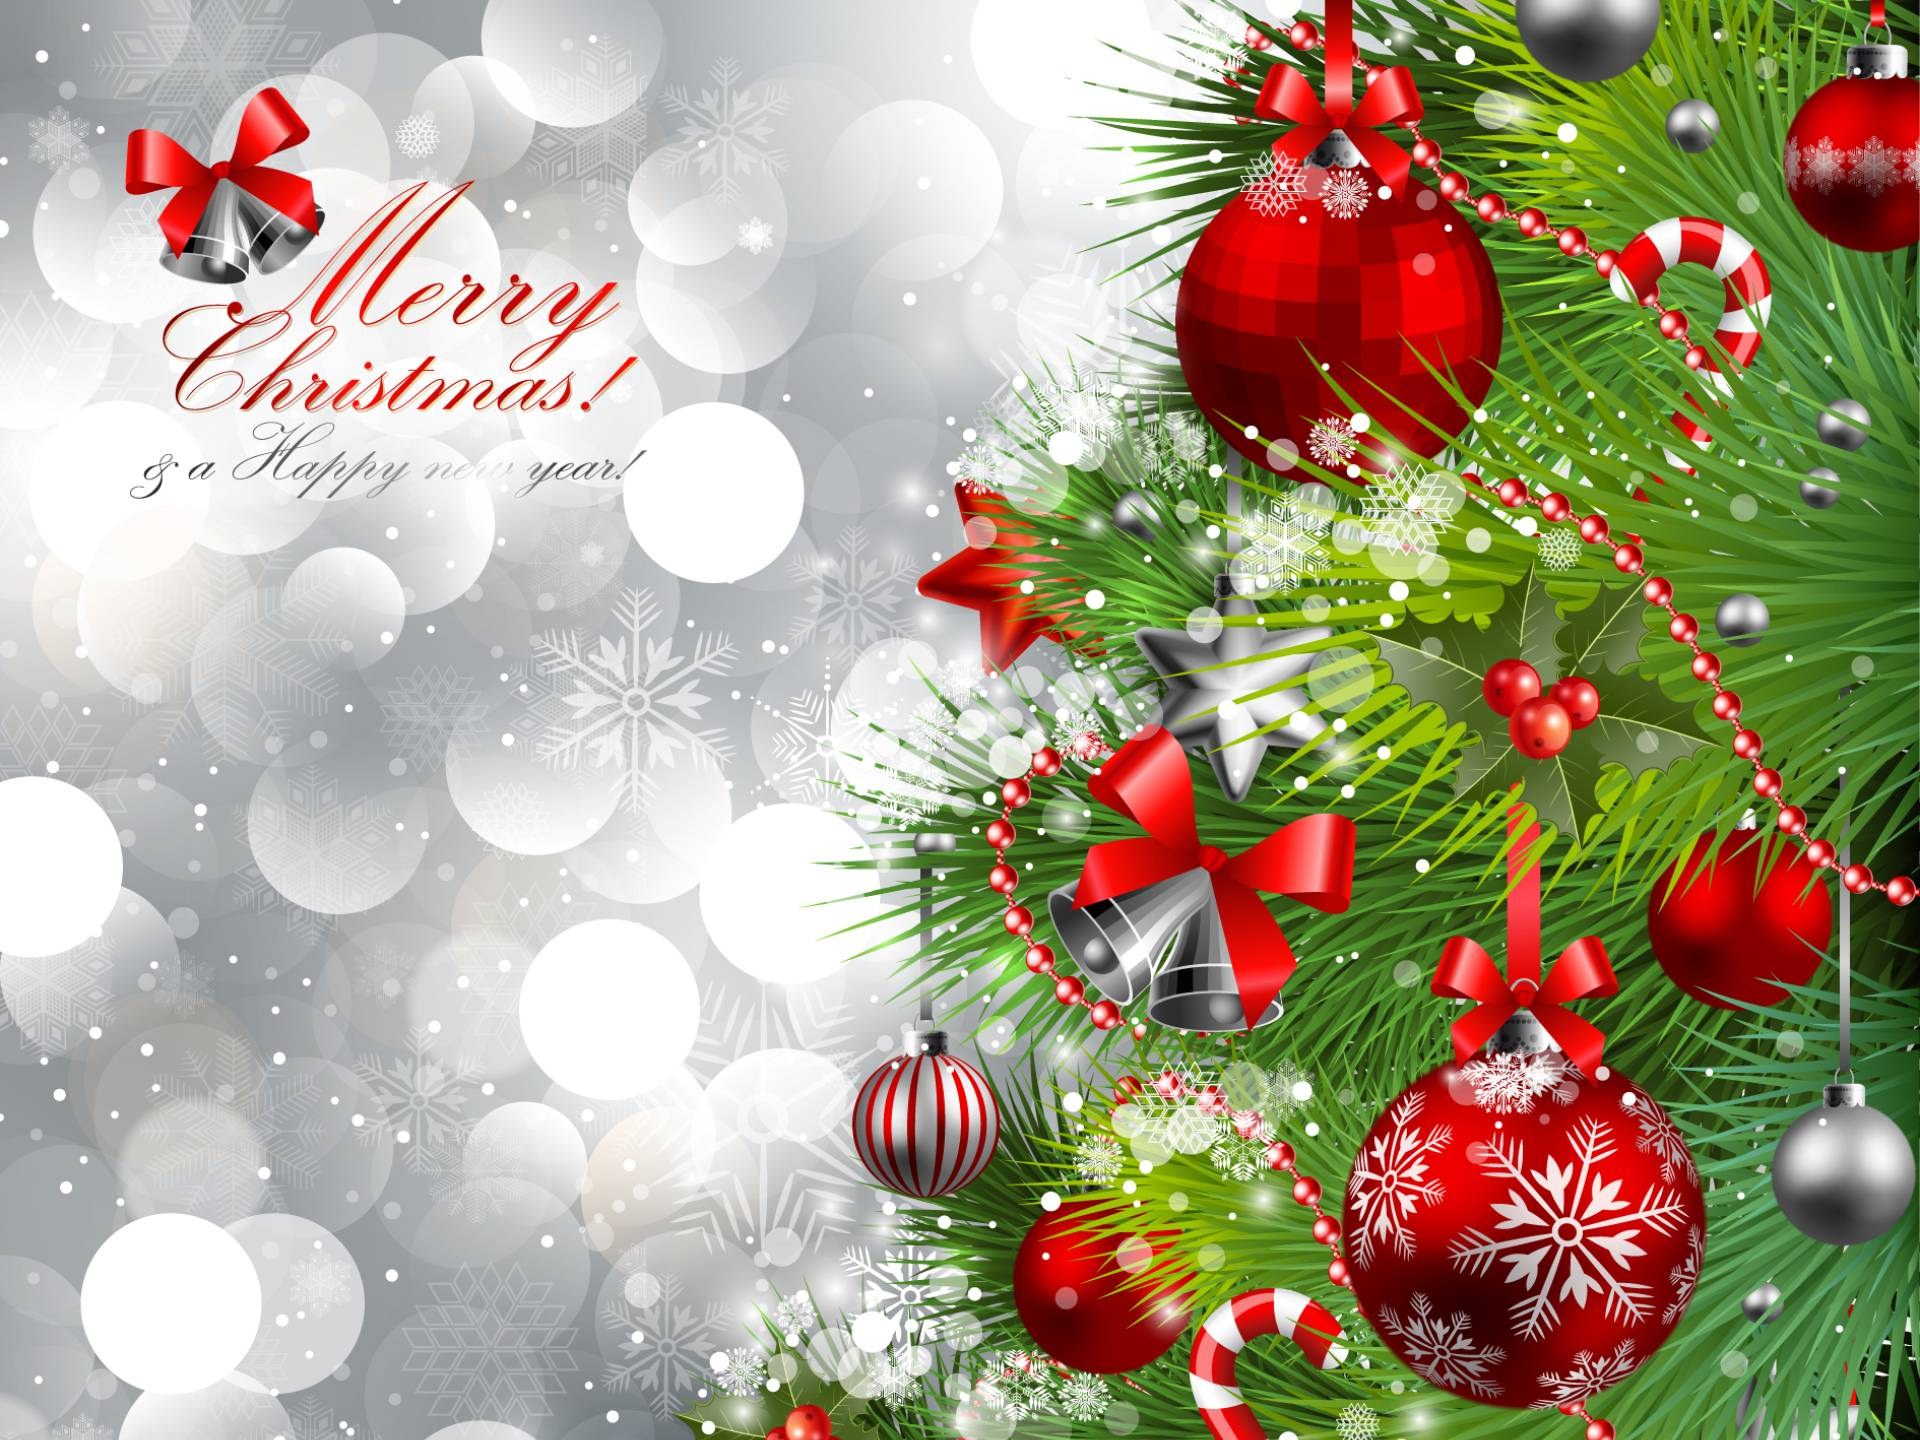 xmas wallpaper for desktop background